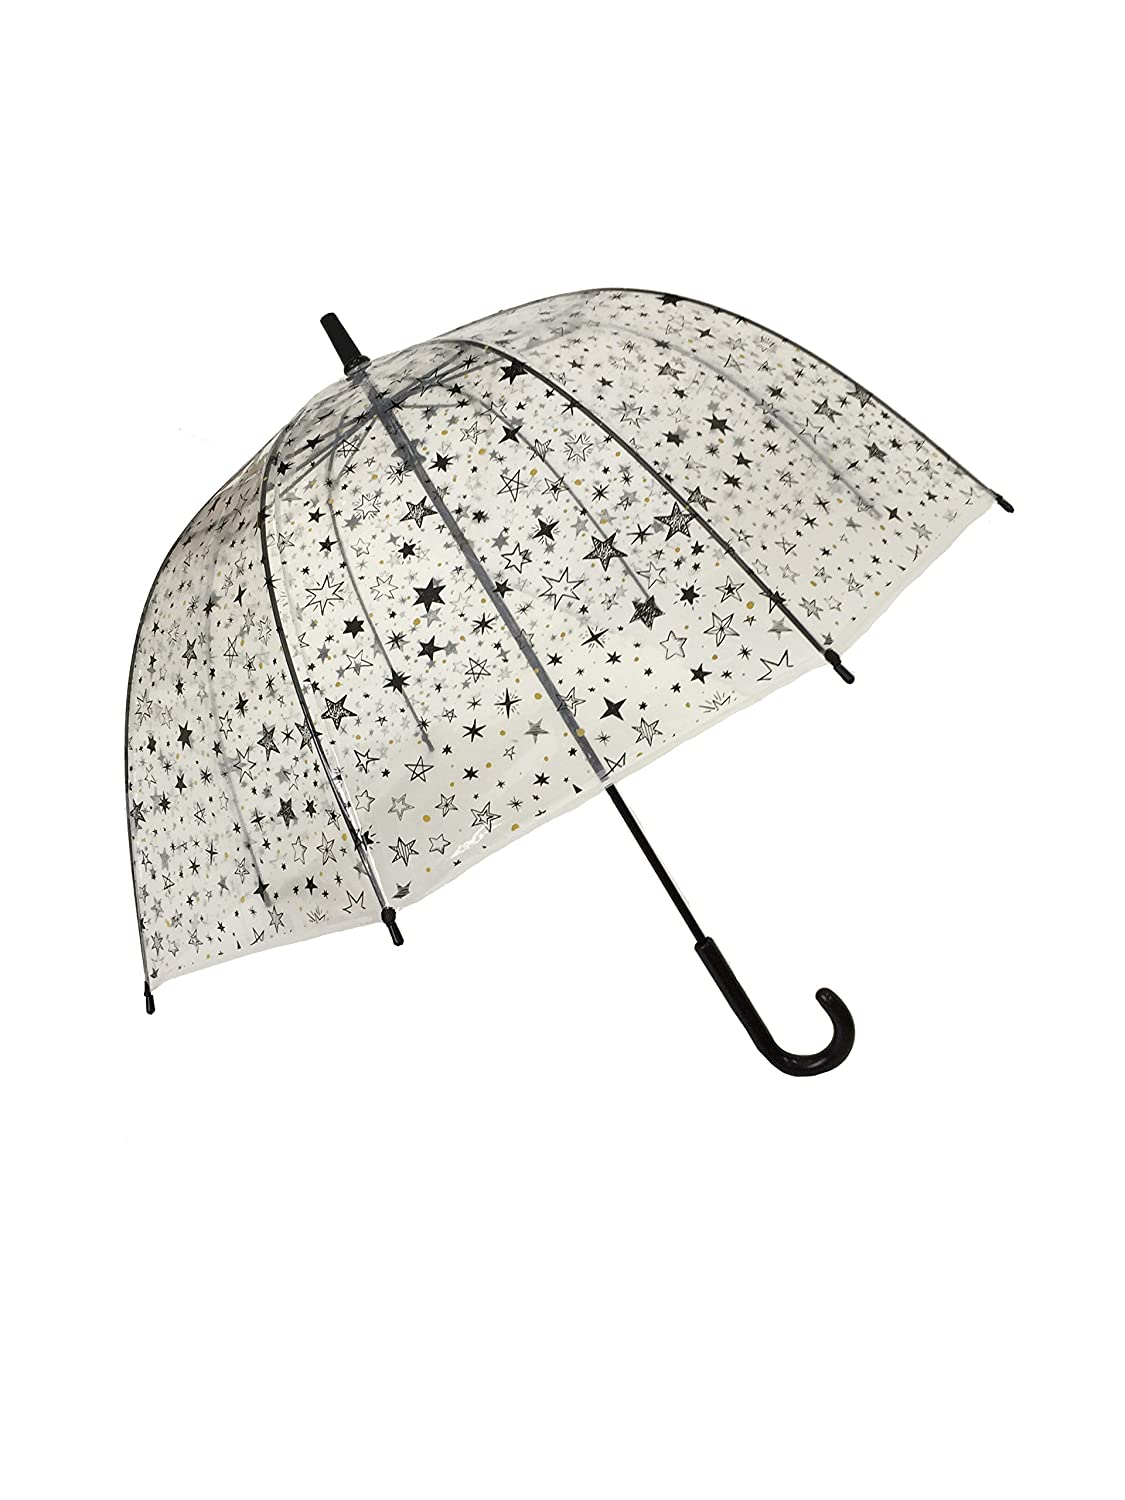 SMATI Stick Clear Umbrella - Birdcage Dome See Through - Windproof (Rainbow) SMATIBUL3468ARCENCIEL